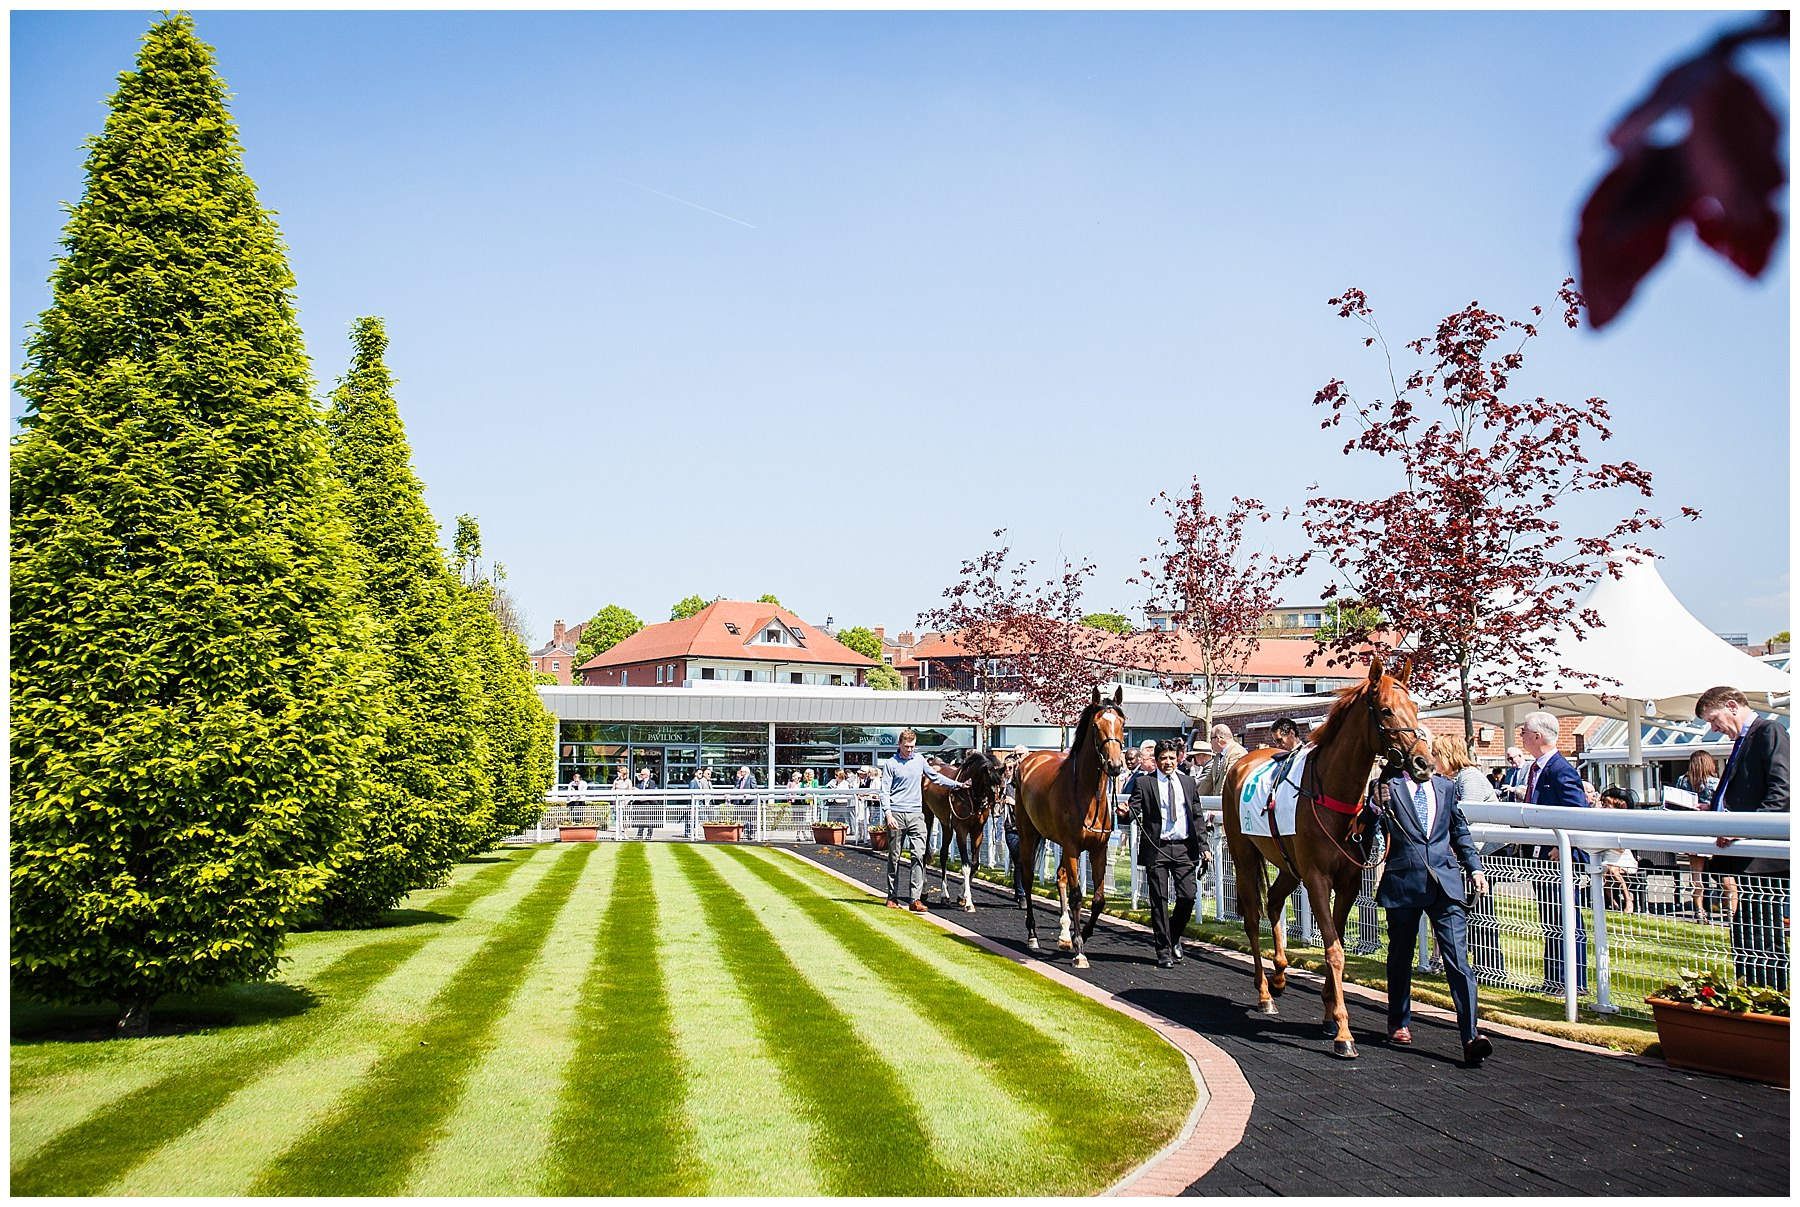 horses being walked around the pavillion chester race course - chester event photographer